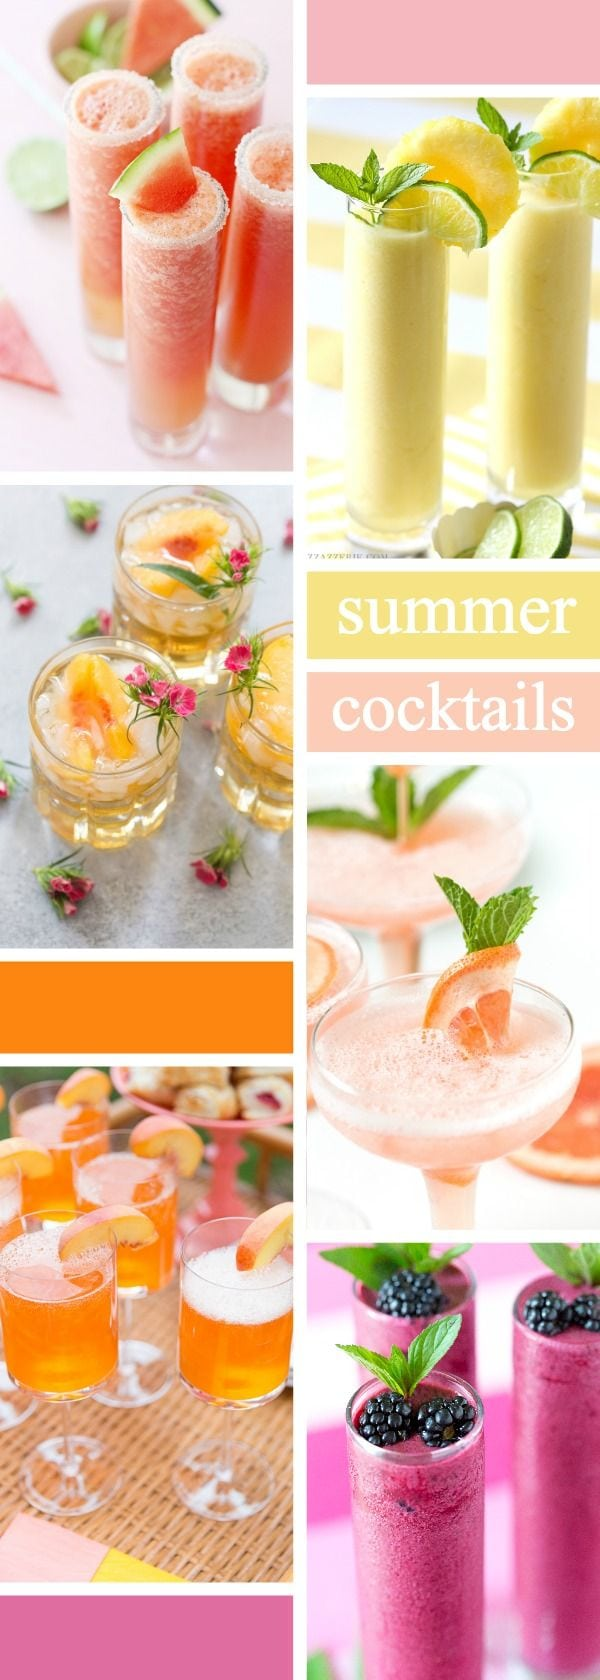 Pineapple Coolers Recipe Perfect Summer Drink